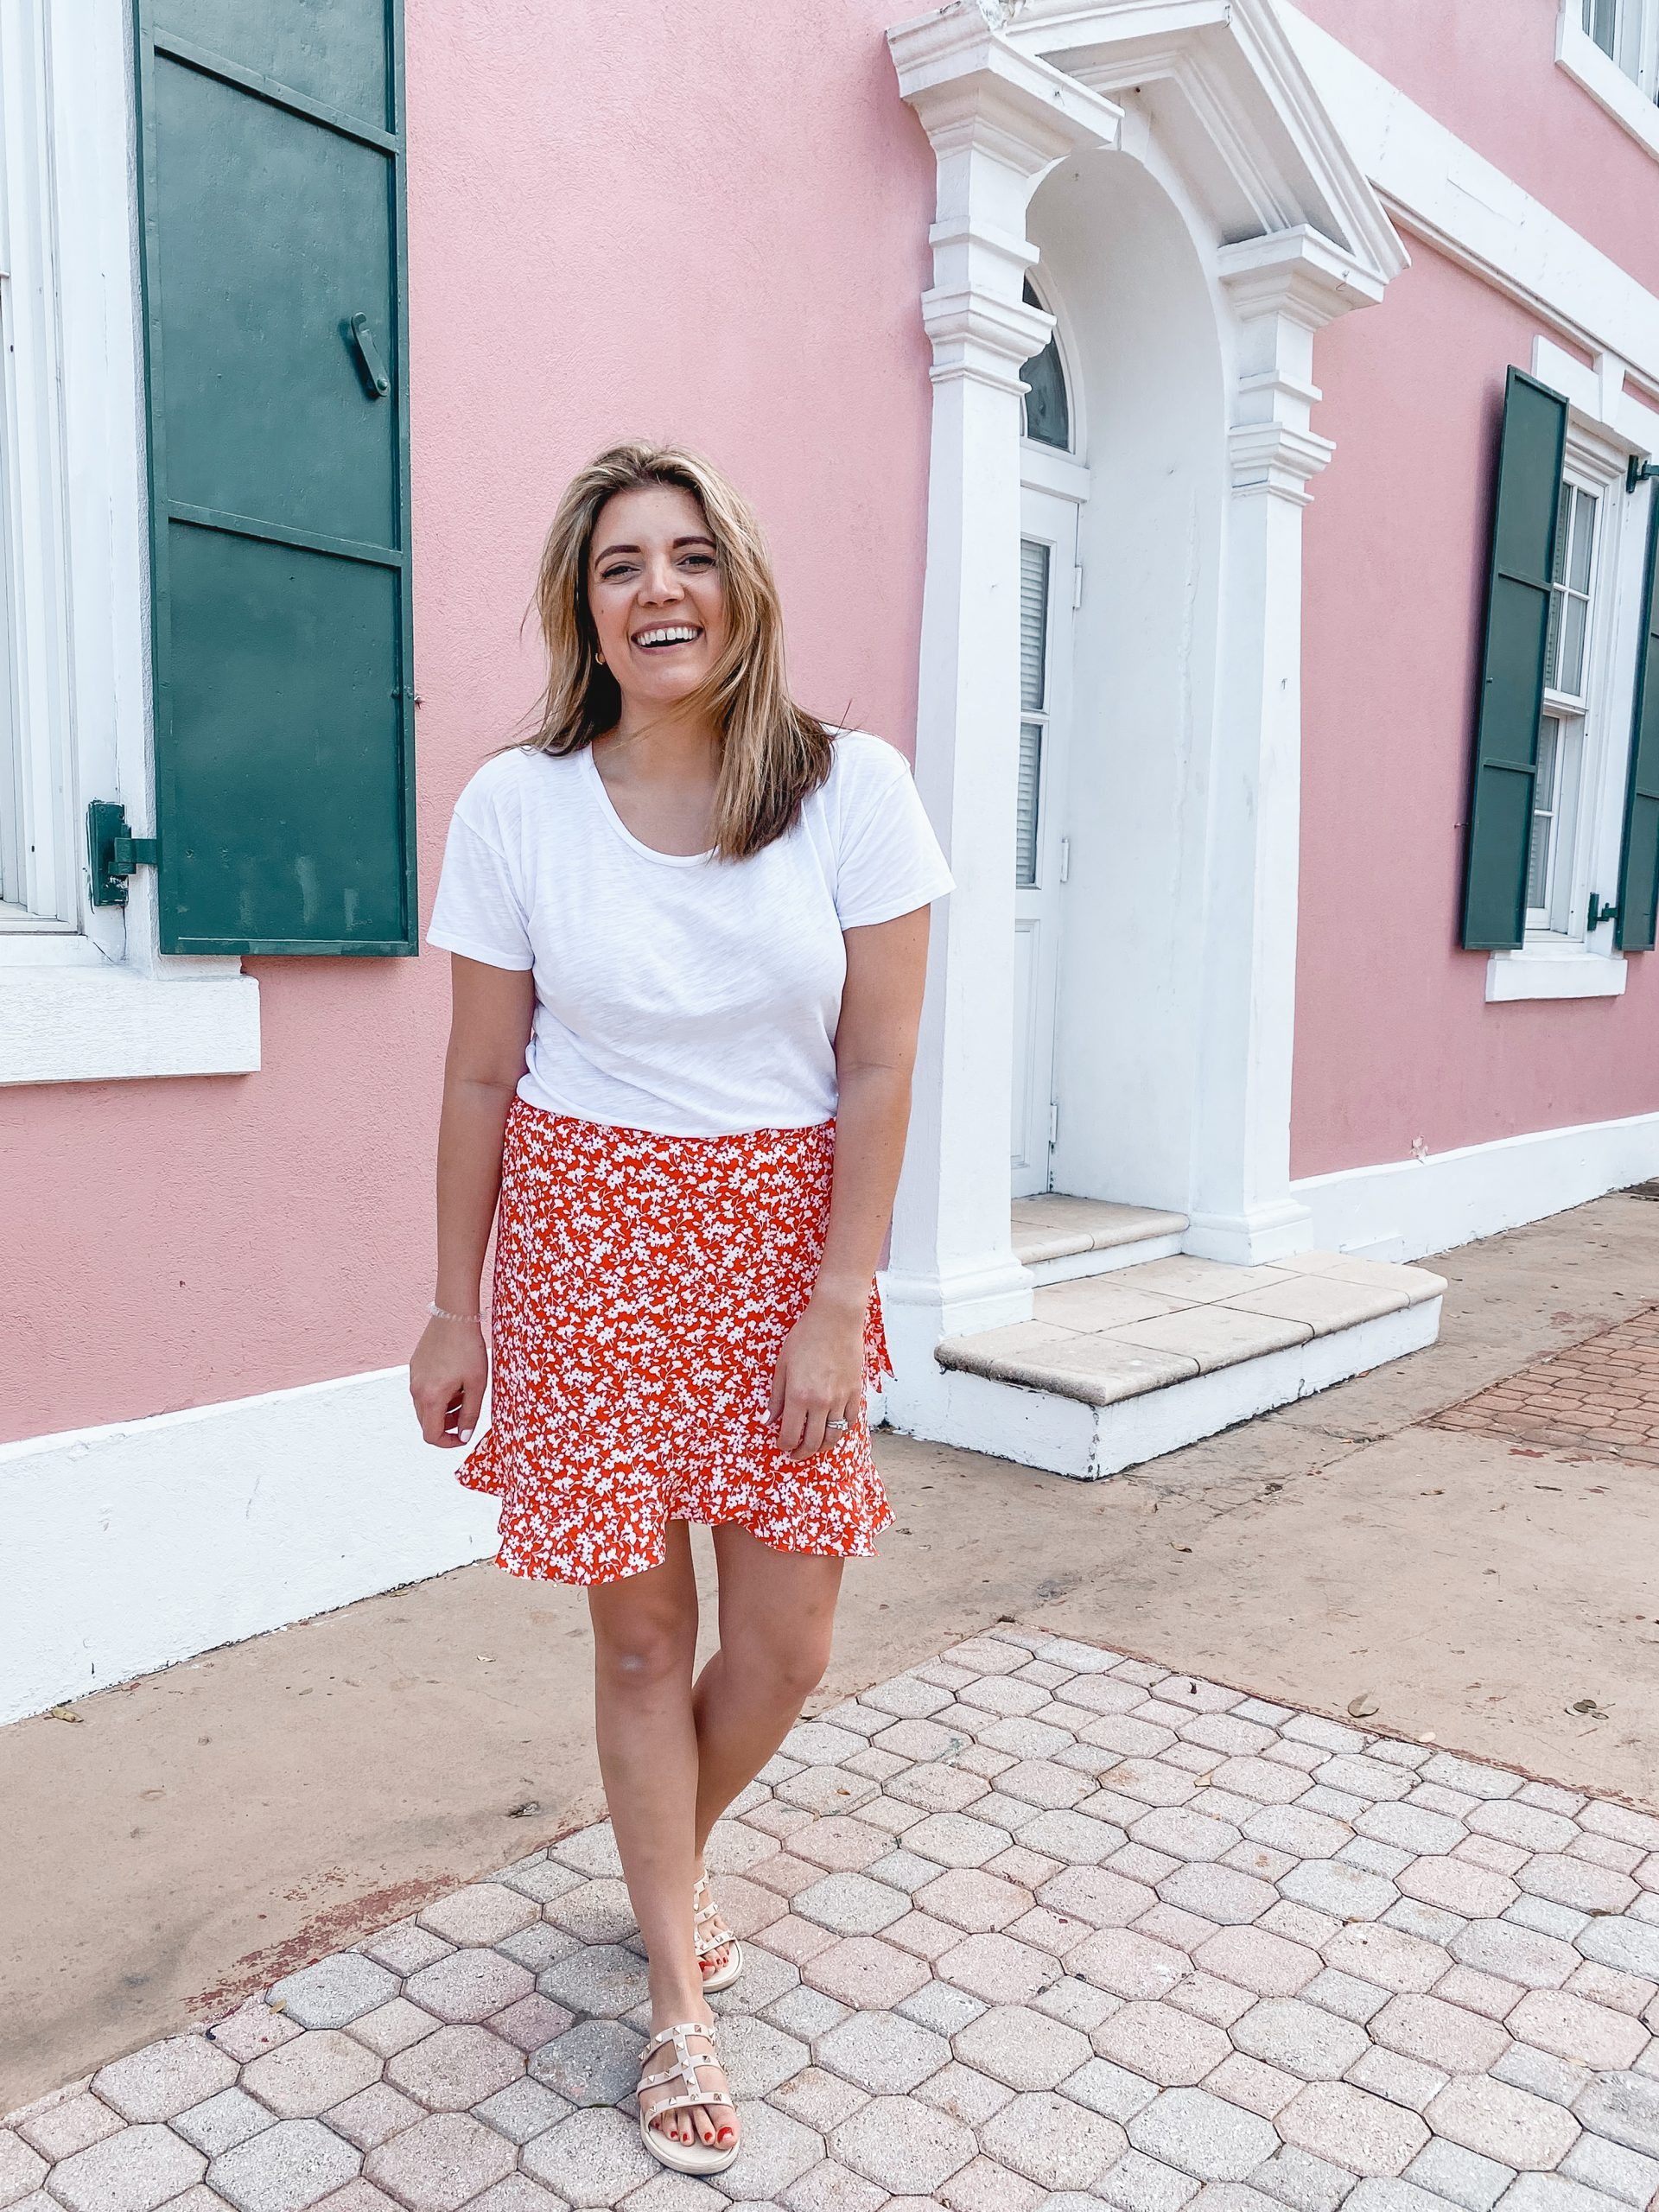 Virginia blogger, Lauren Dix, shares her Disney cruise outfits and 3 night Disney cruise packing list!